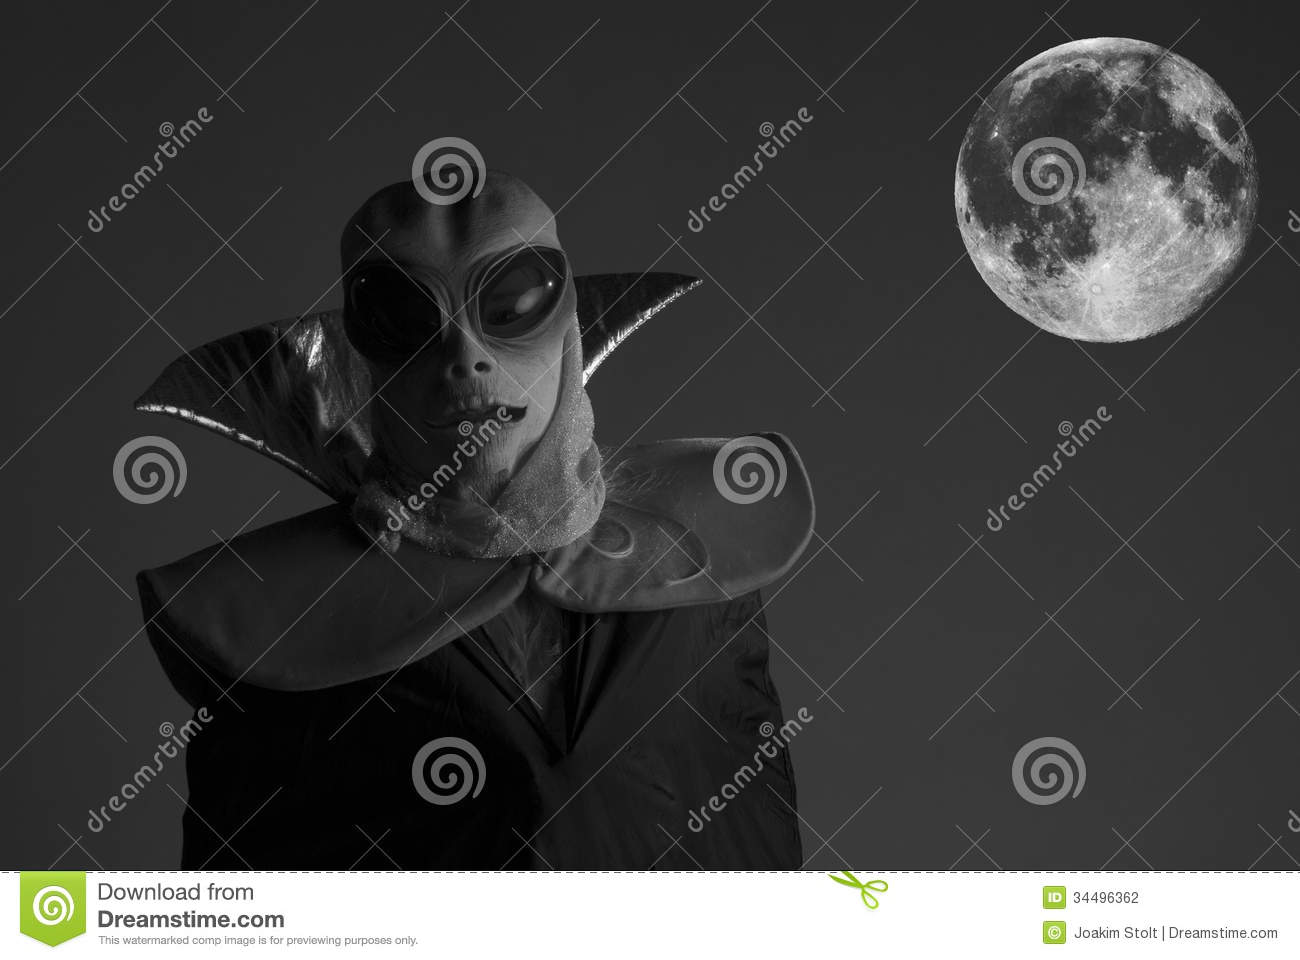 Alien in full moon